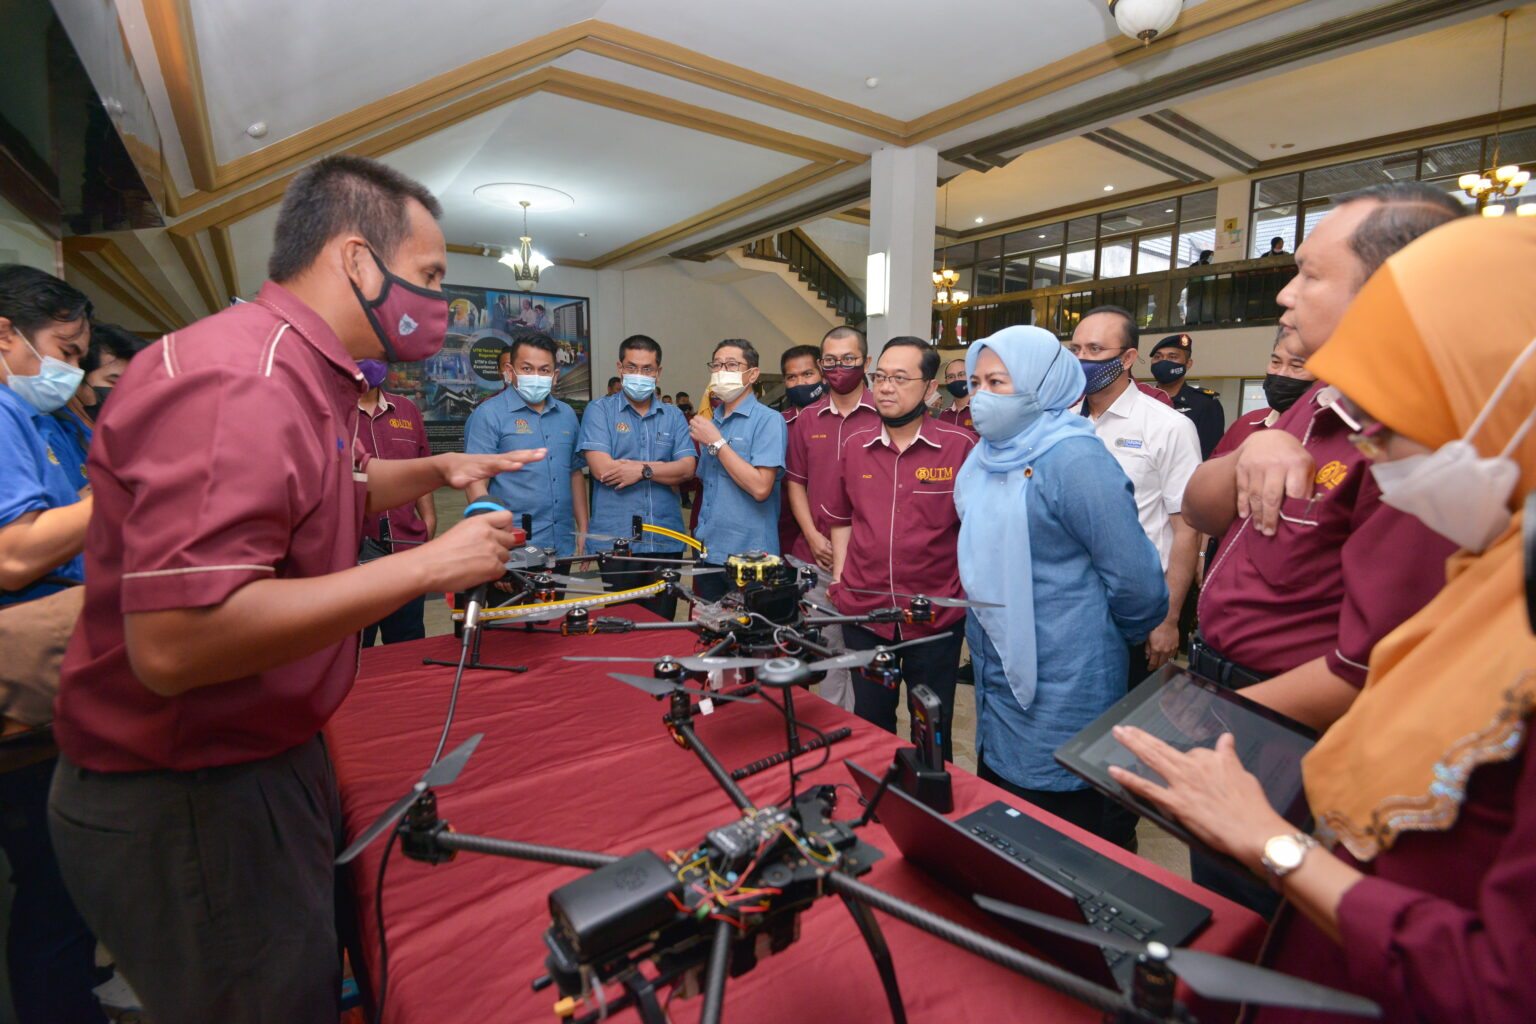 JAGADrone: UTM Pioneers Drone Technology for Campus Security